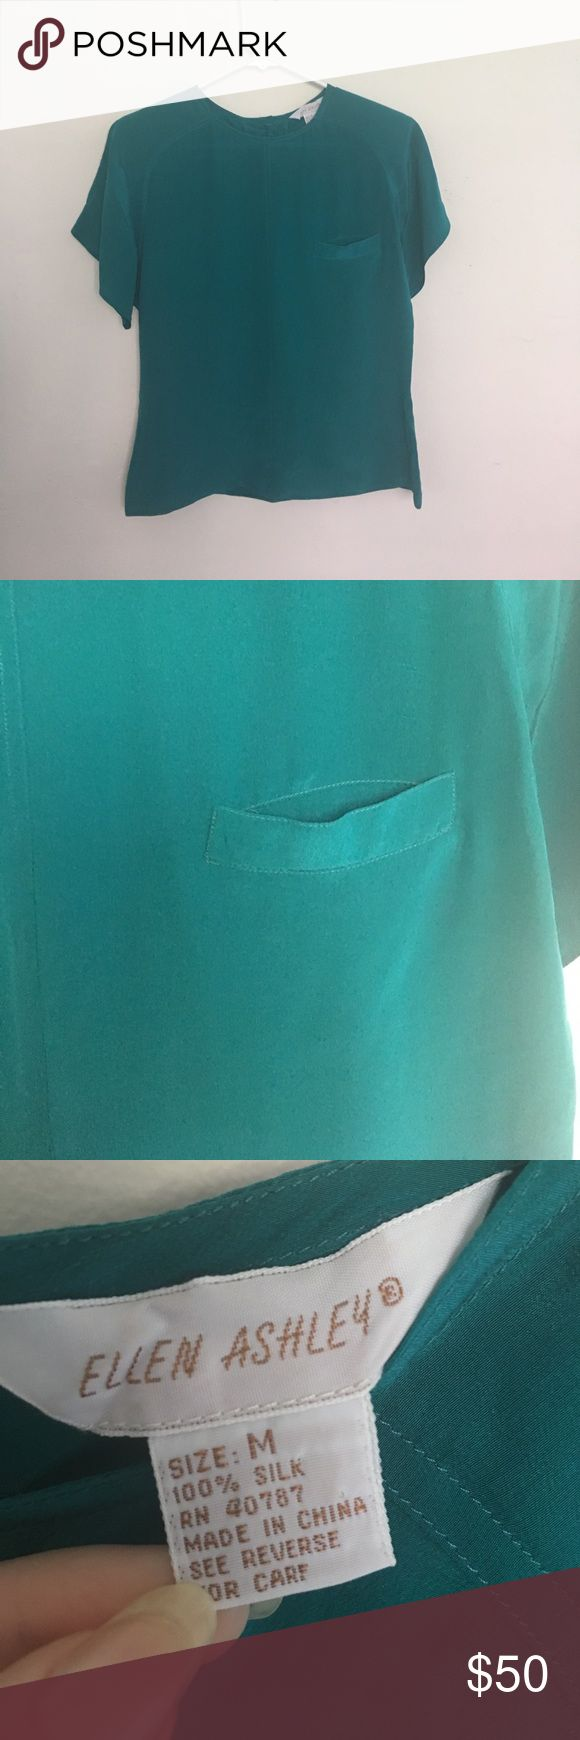 100% Silk Dark Turquoise Blouse Beautiful color, perfect for summer, Thin and airy, 100% silk, Size M, has small pocket on front, rarely worn Tops Blouses